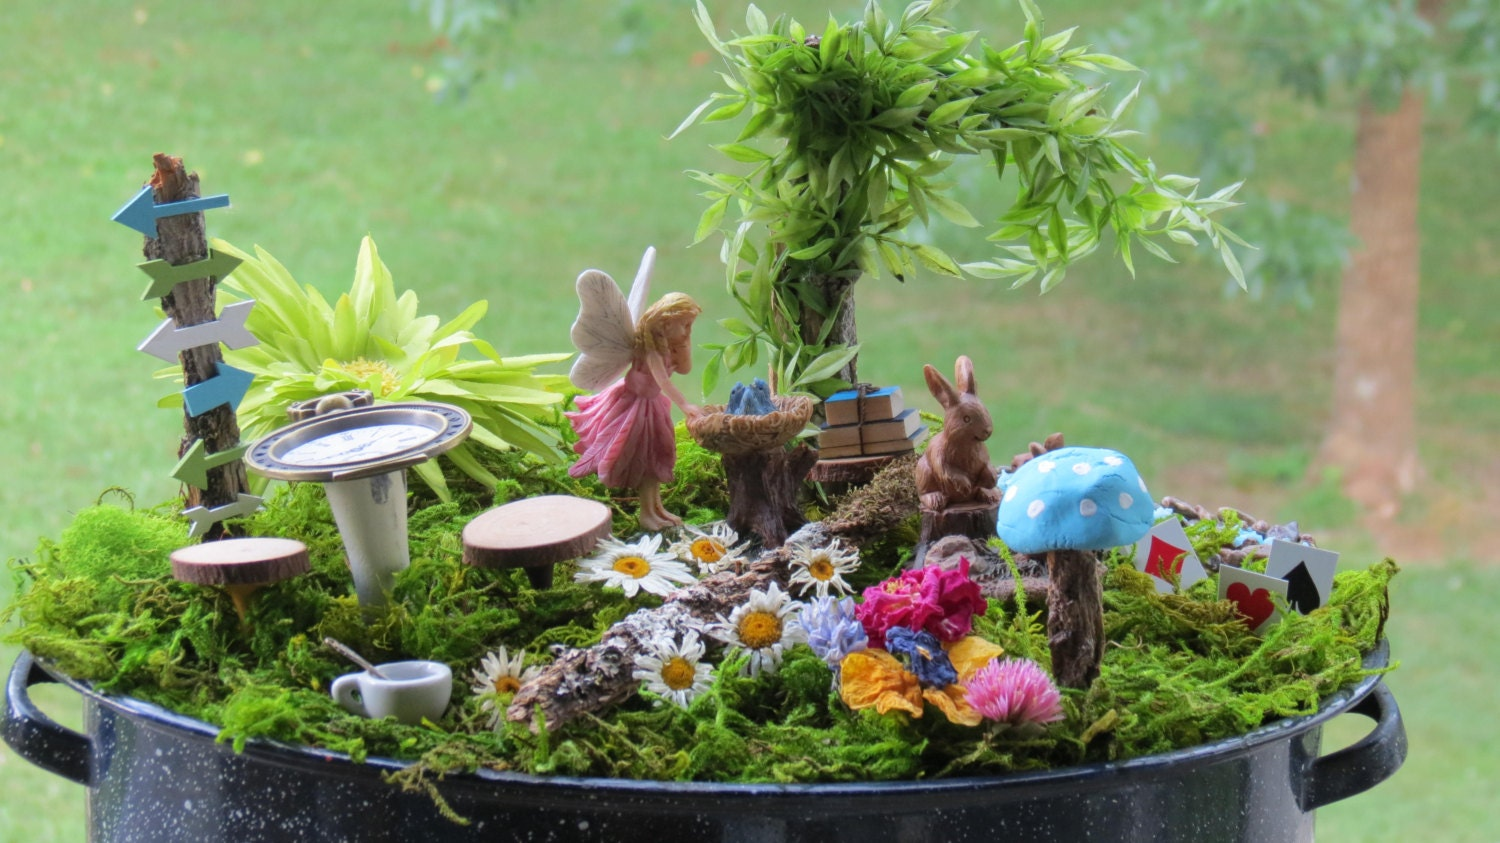 Complete fairy garden kit with container alice in wonderland for Alice in wonderland fairy garden